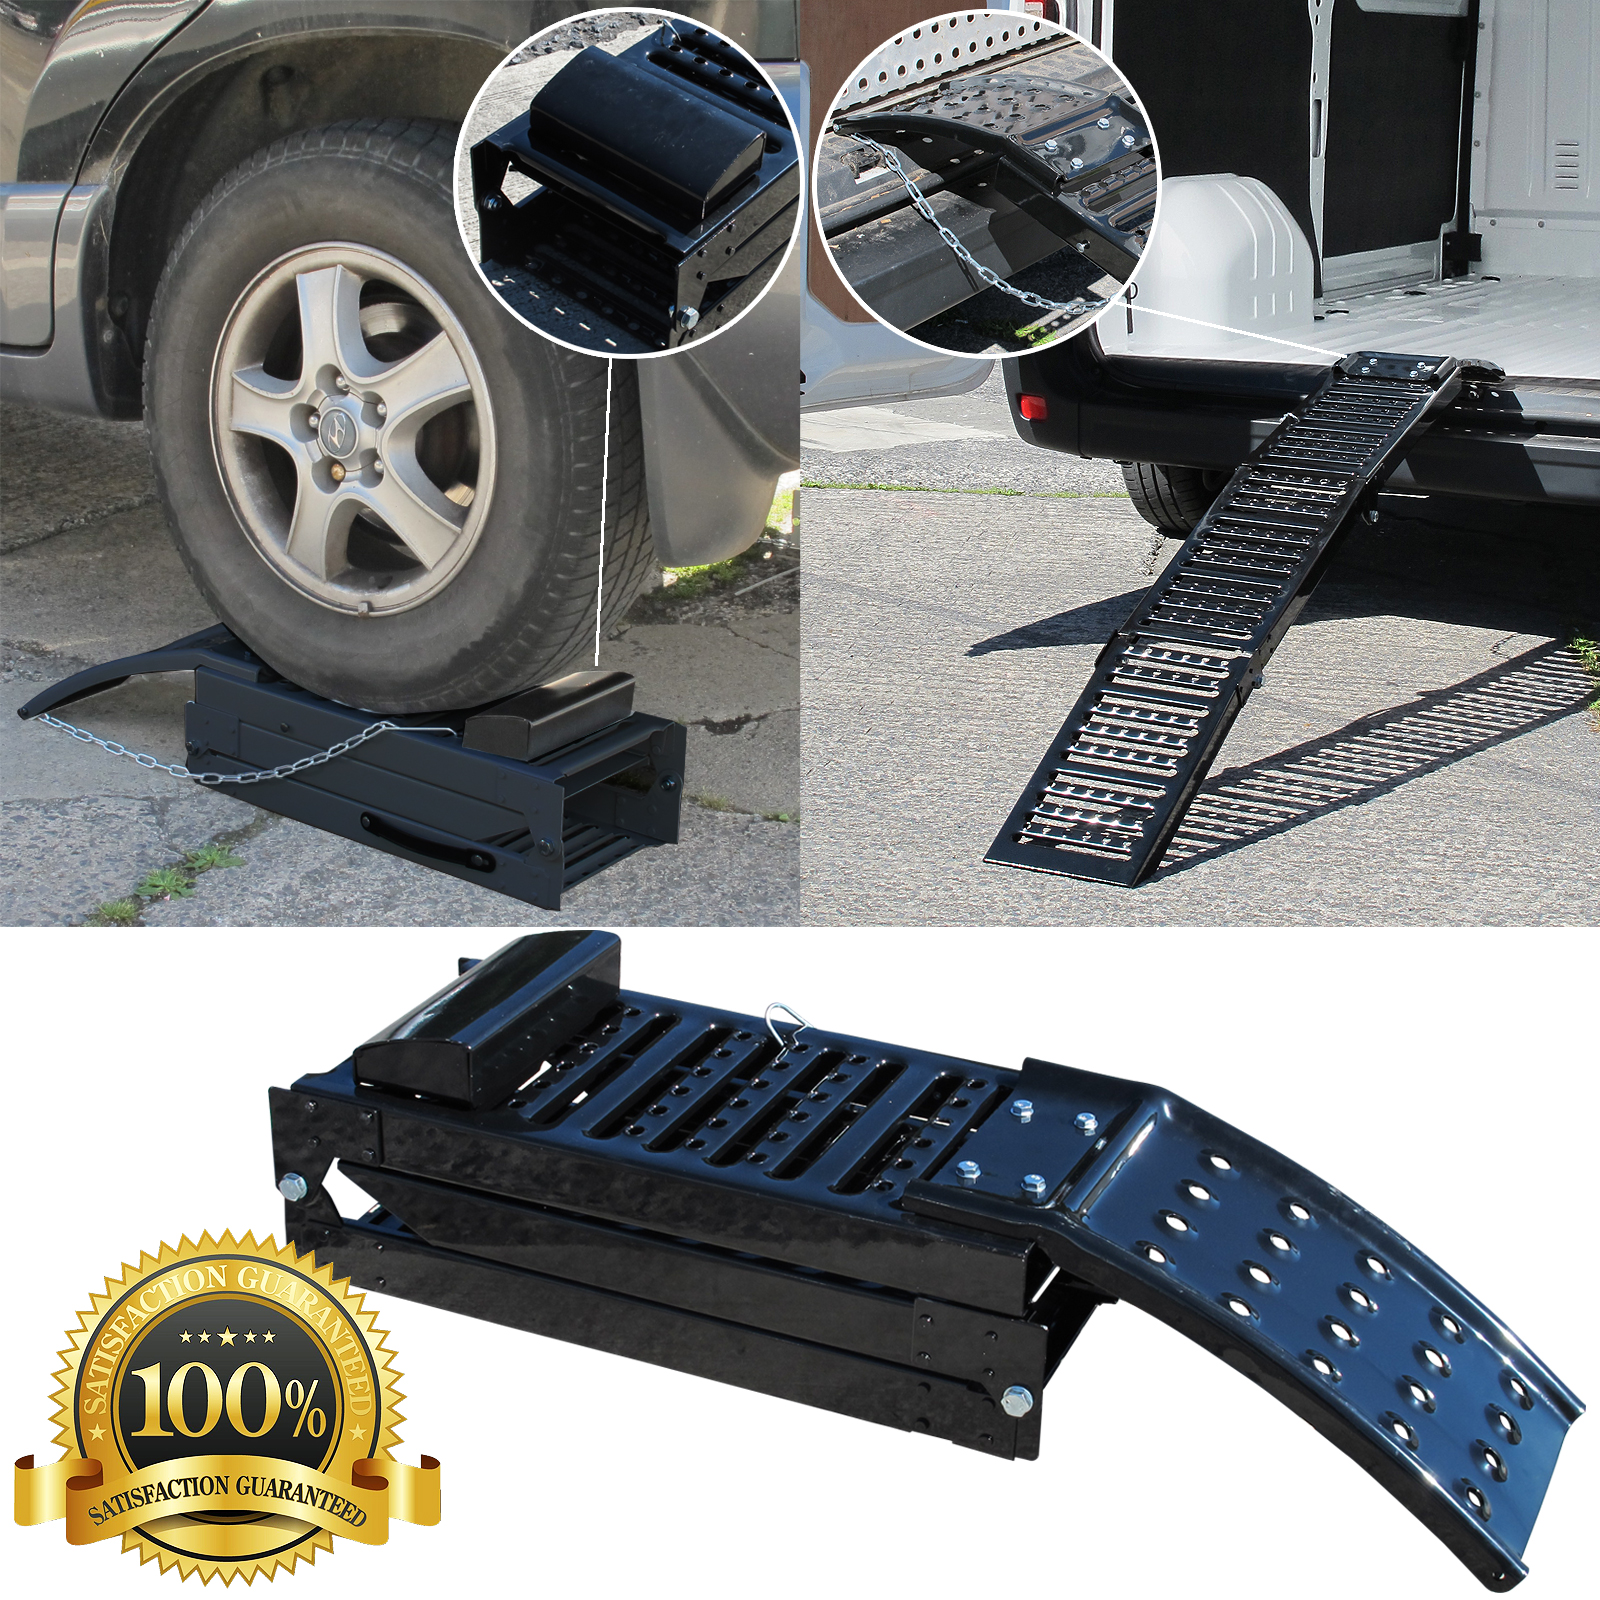 Folding Black Steel Car Ramps Dual Purpose Steel Motorcycle Loading Ramp Single Ebay